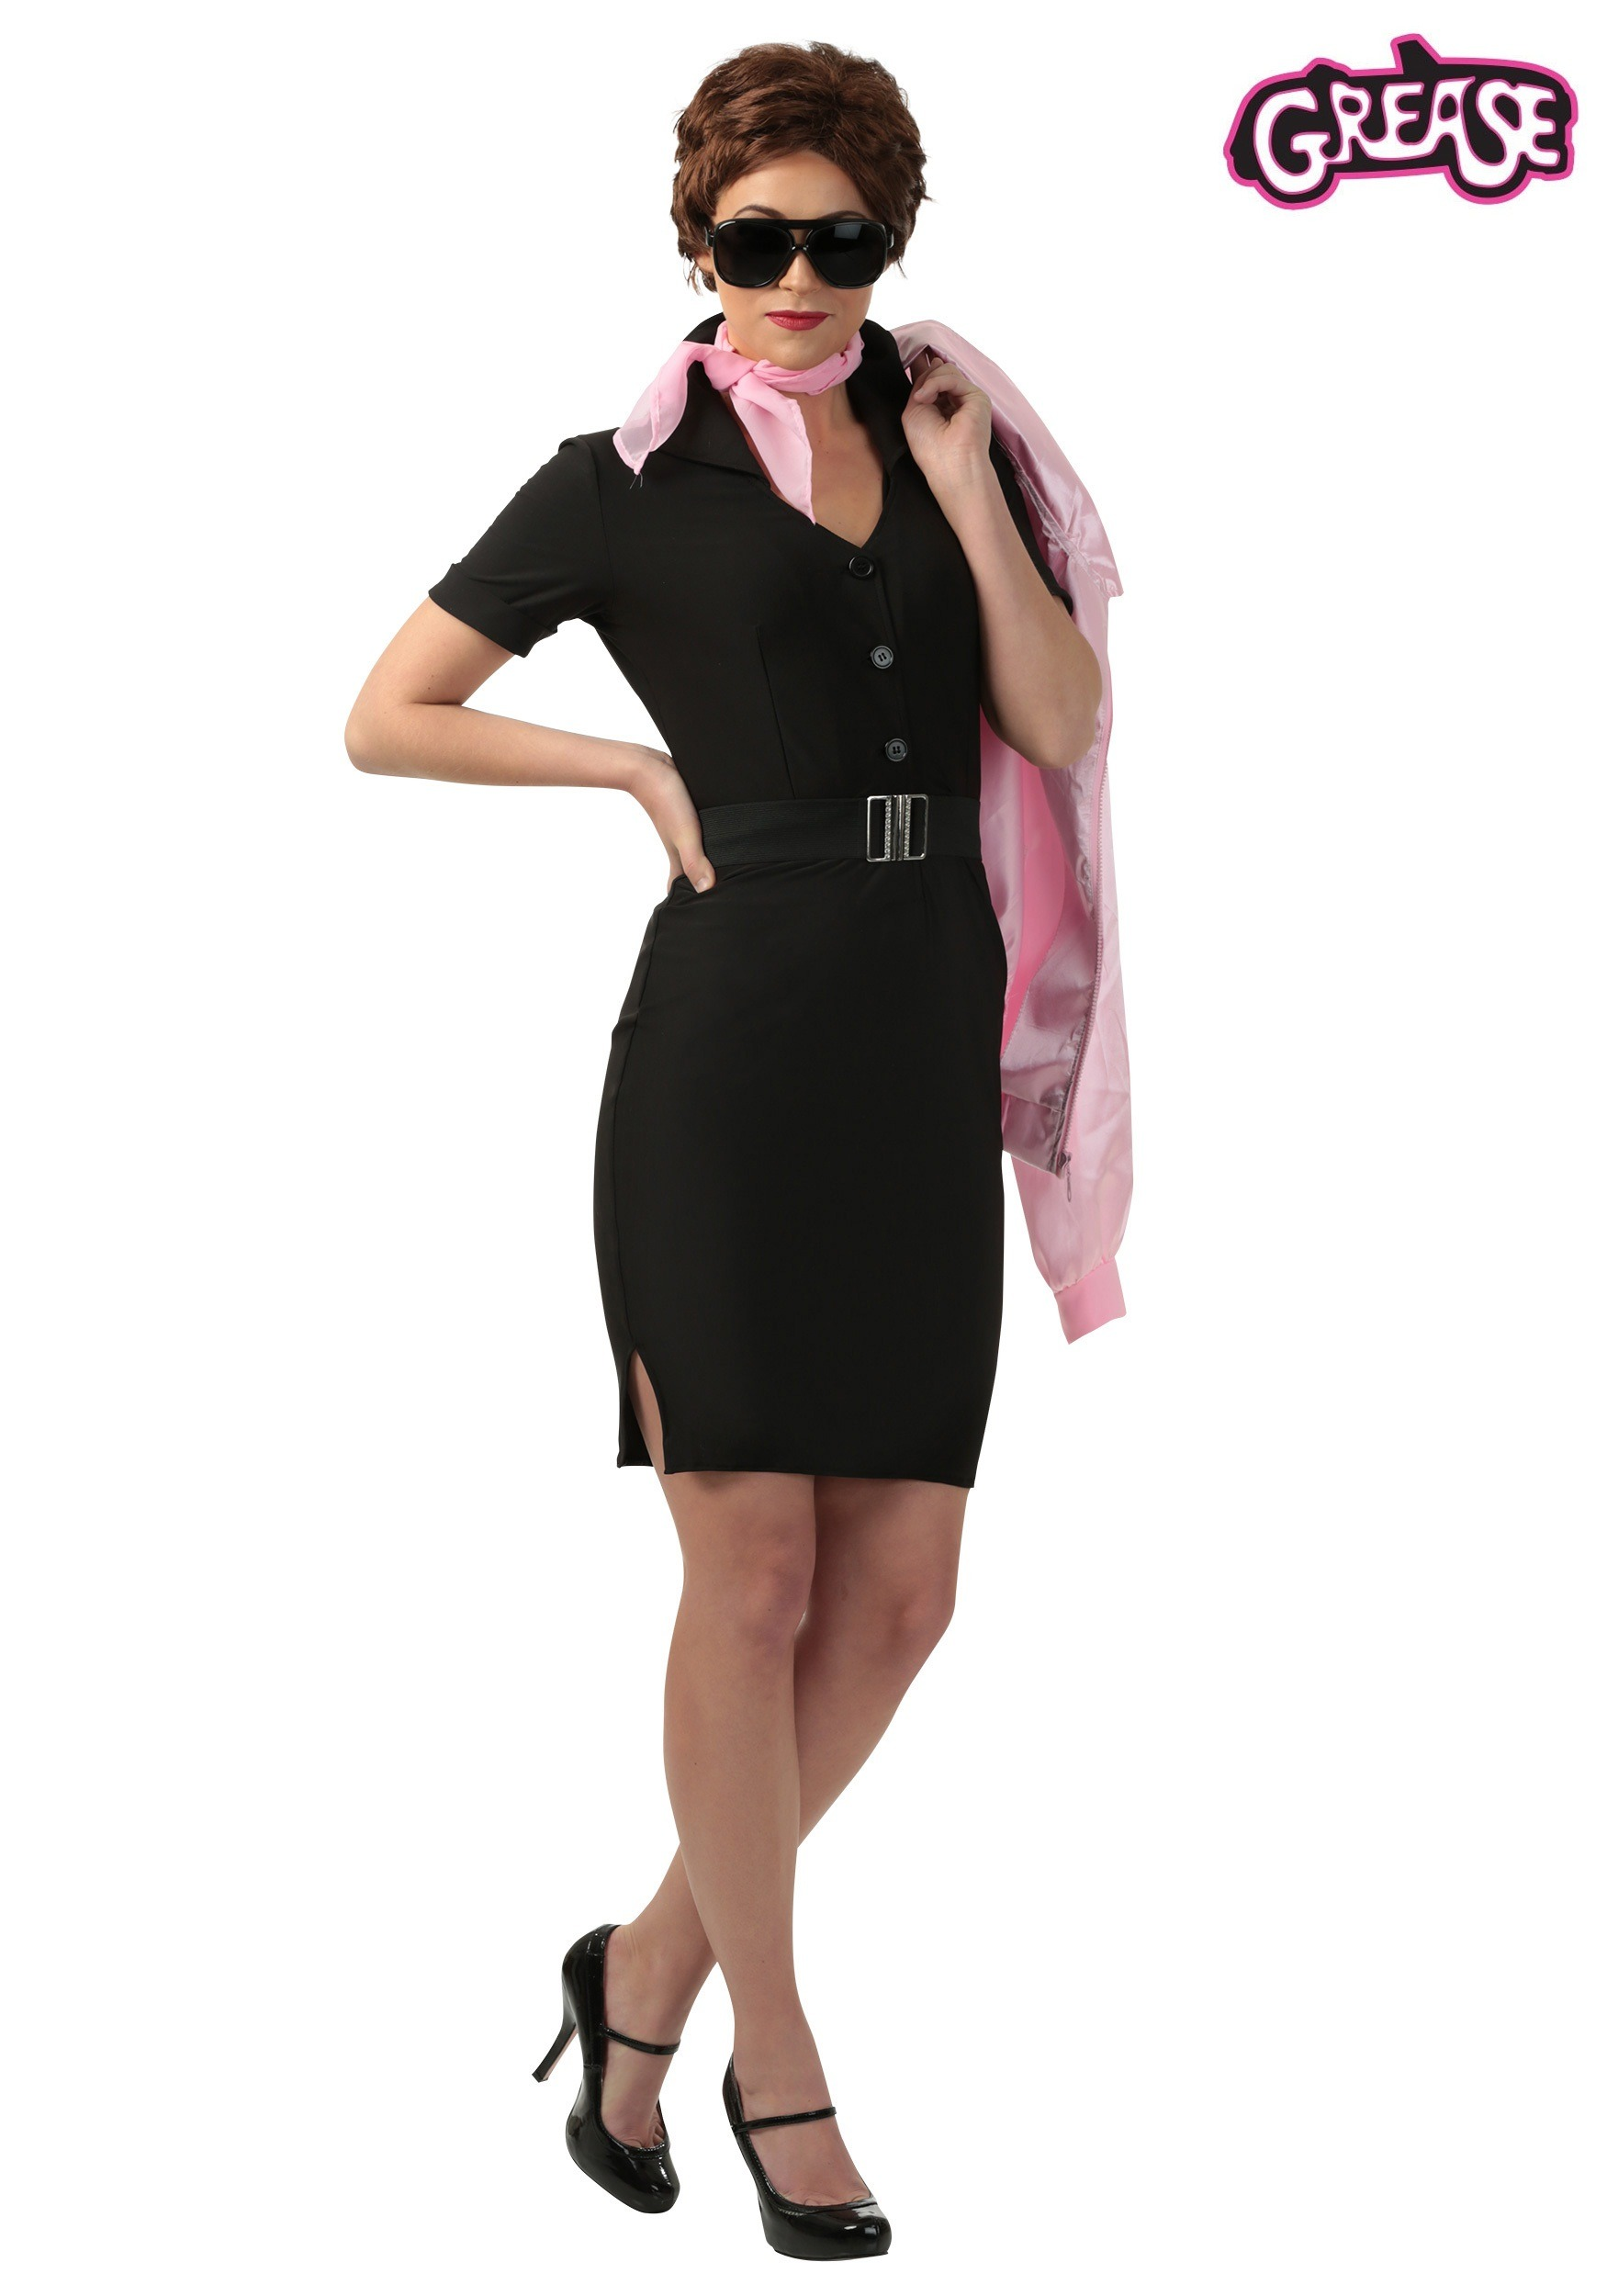 Plus Size Grease Rizzo Costume For Women